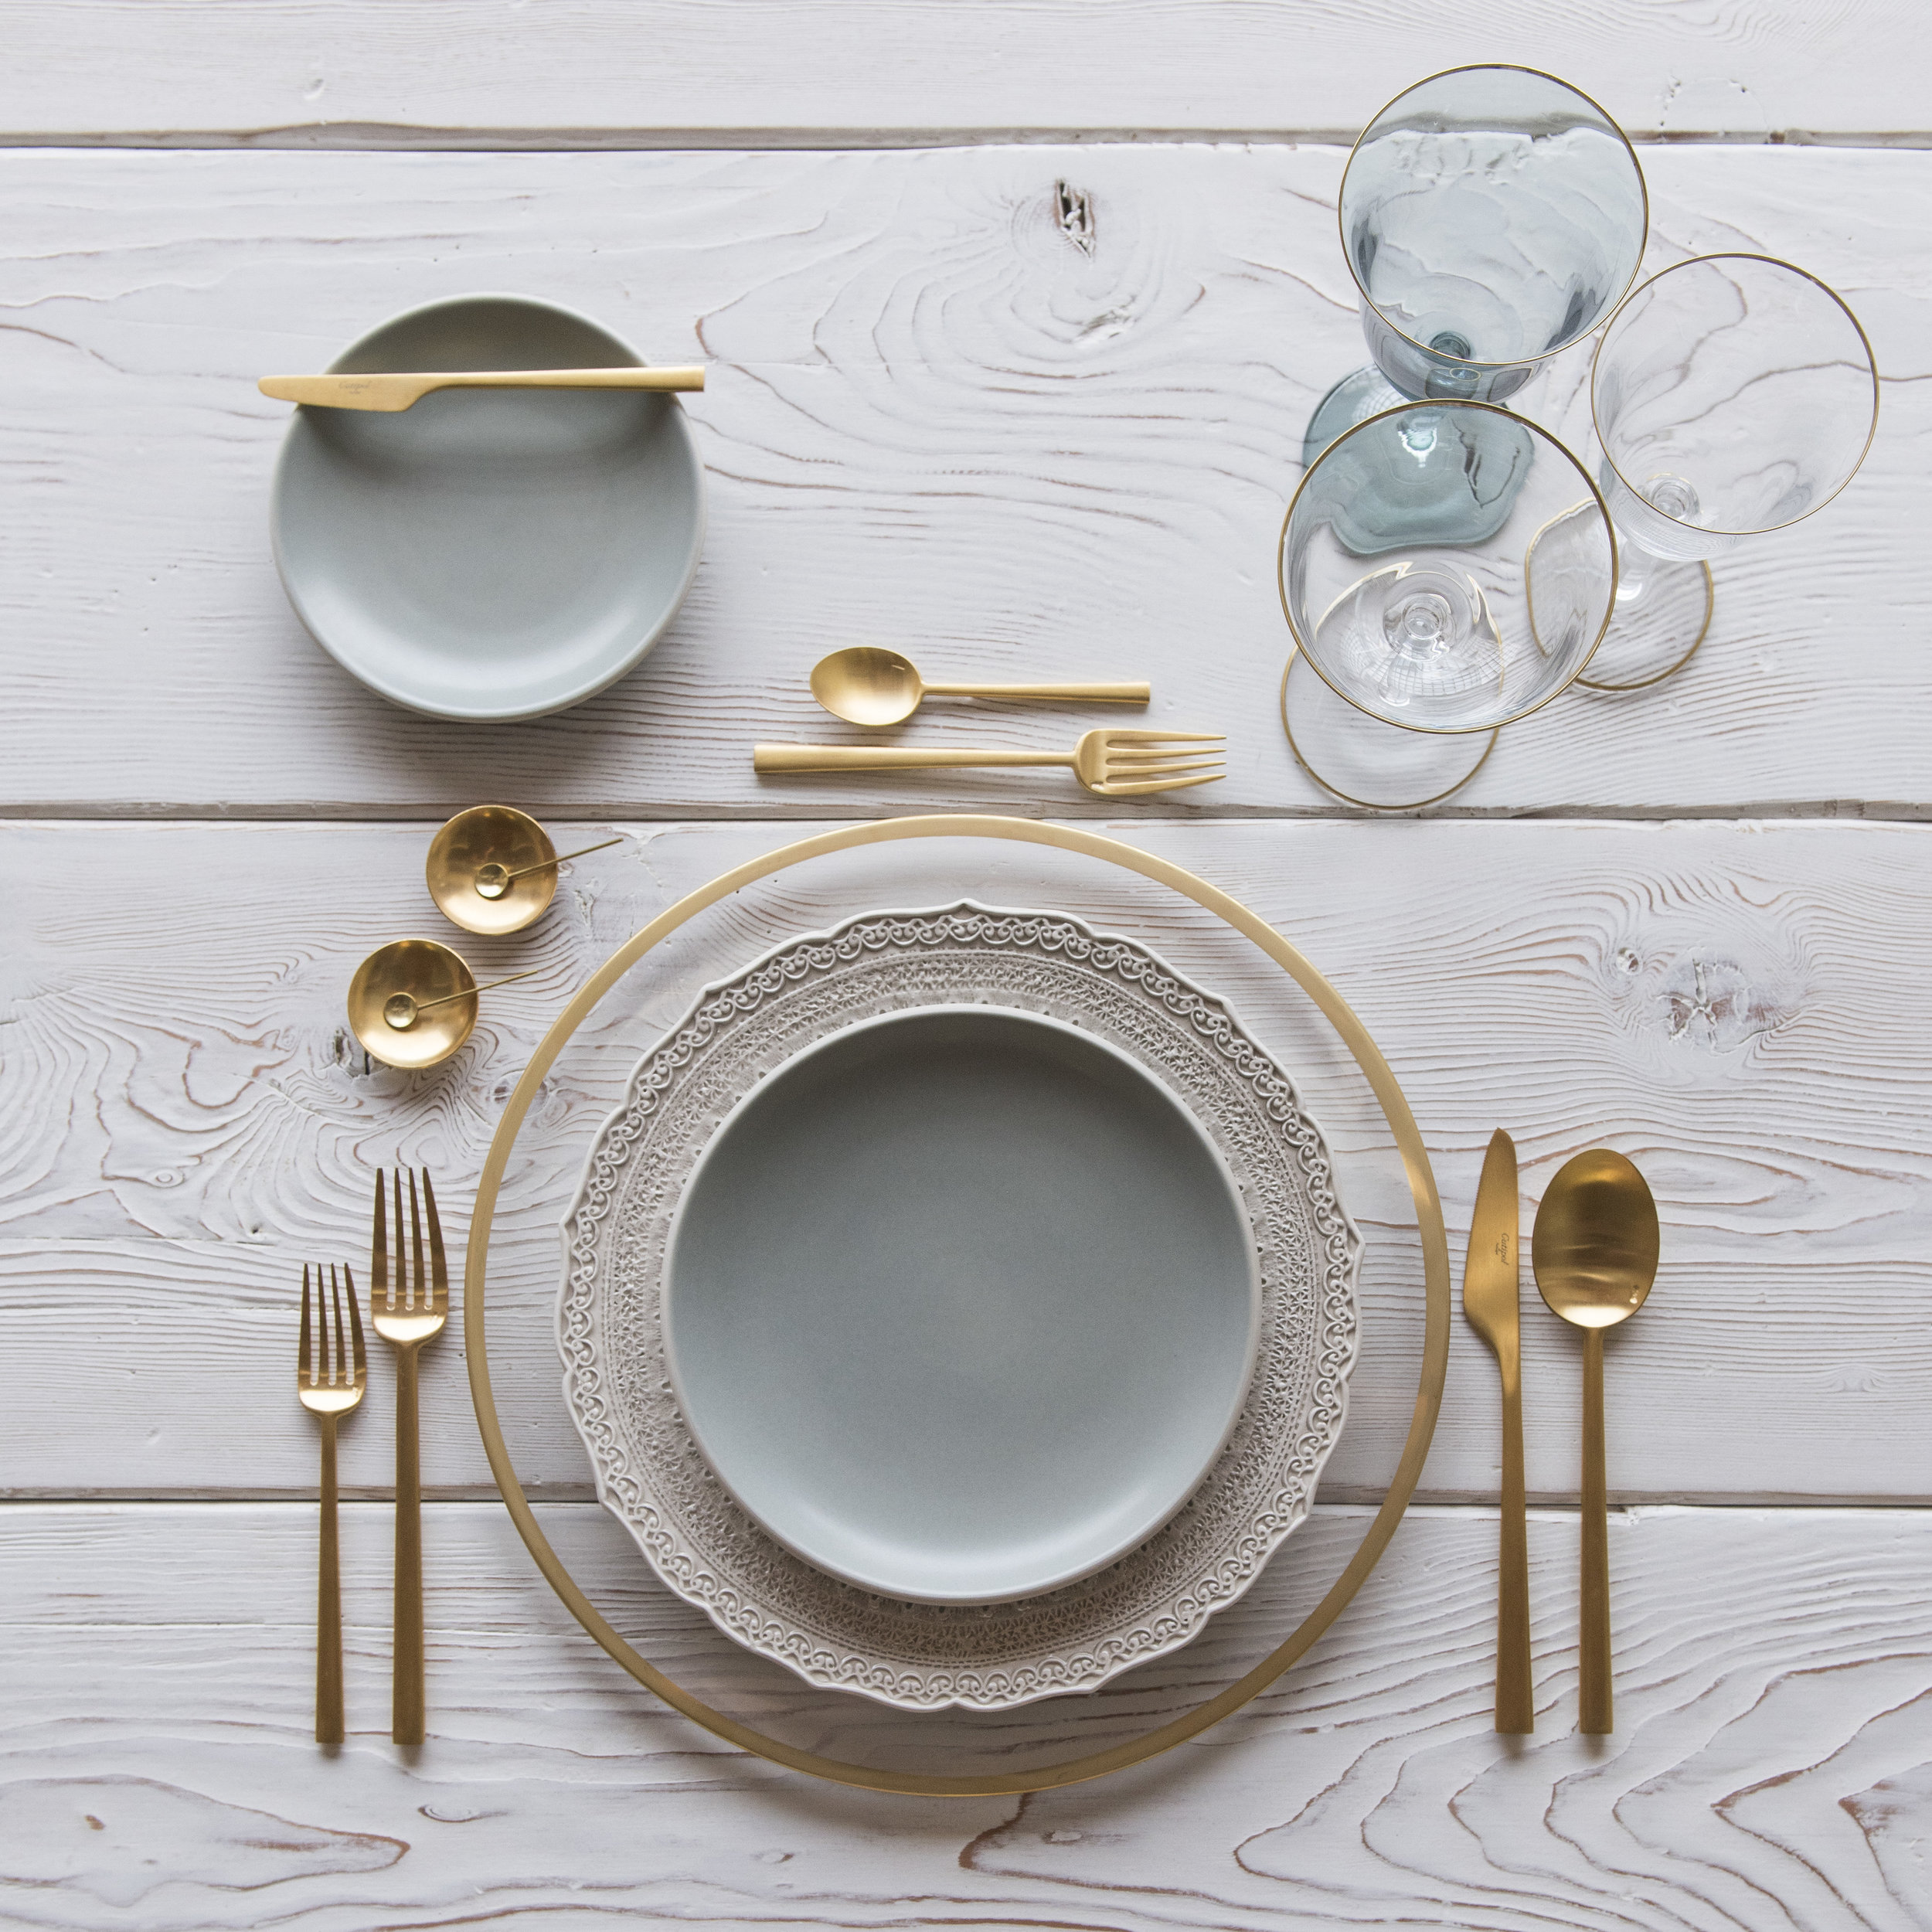 RENT: Halo Glass Chargers in 24k Gold + Lace Dinnerware in White + Heath Ceramics in Mist + Rondo Flatware in Brushed 24k Gold + Chloe 24k Gold Rimmed Stemware + Chloe 24k Gold Rimmed Goblet in Agave + 14k Gold Salt Cellars + Tiny Gold Spoons  SHOP:Halo Glass Chargers in 24k Gold + Rondo Flatware in Brushed 24k Gold + Chloe 24k Gold Rimmed Stemware + 14k Gold Salt Cellars + Tiny Gold Spoons